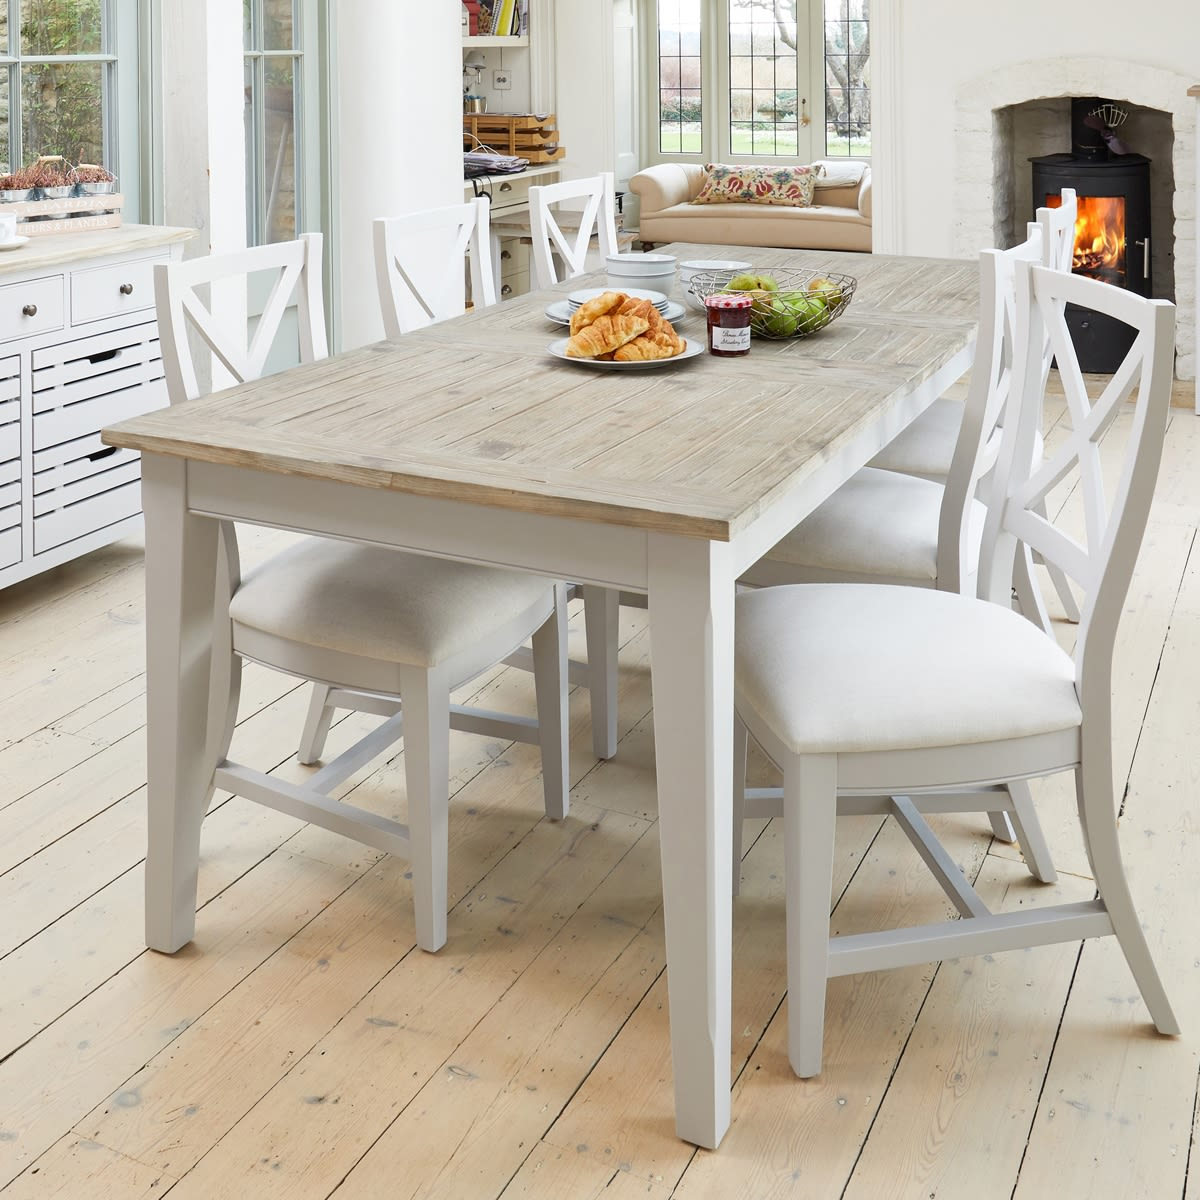 Dining Table 6 Chairs: Signature Grey Extending Dining Table With Six Chairs Was